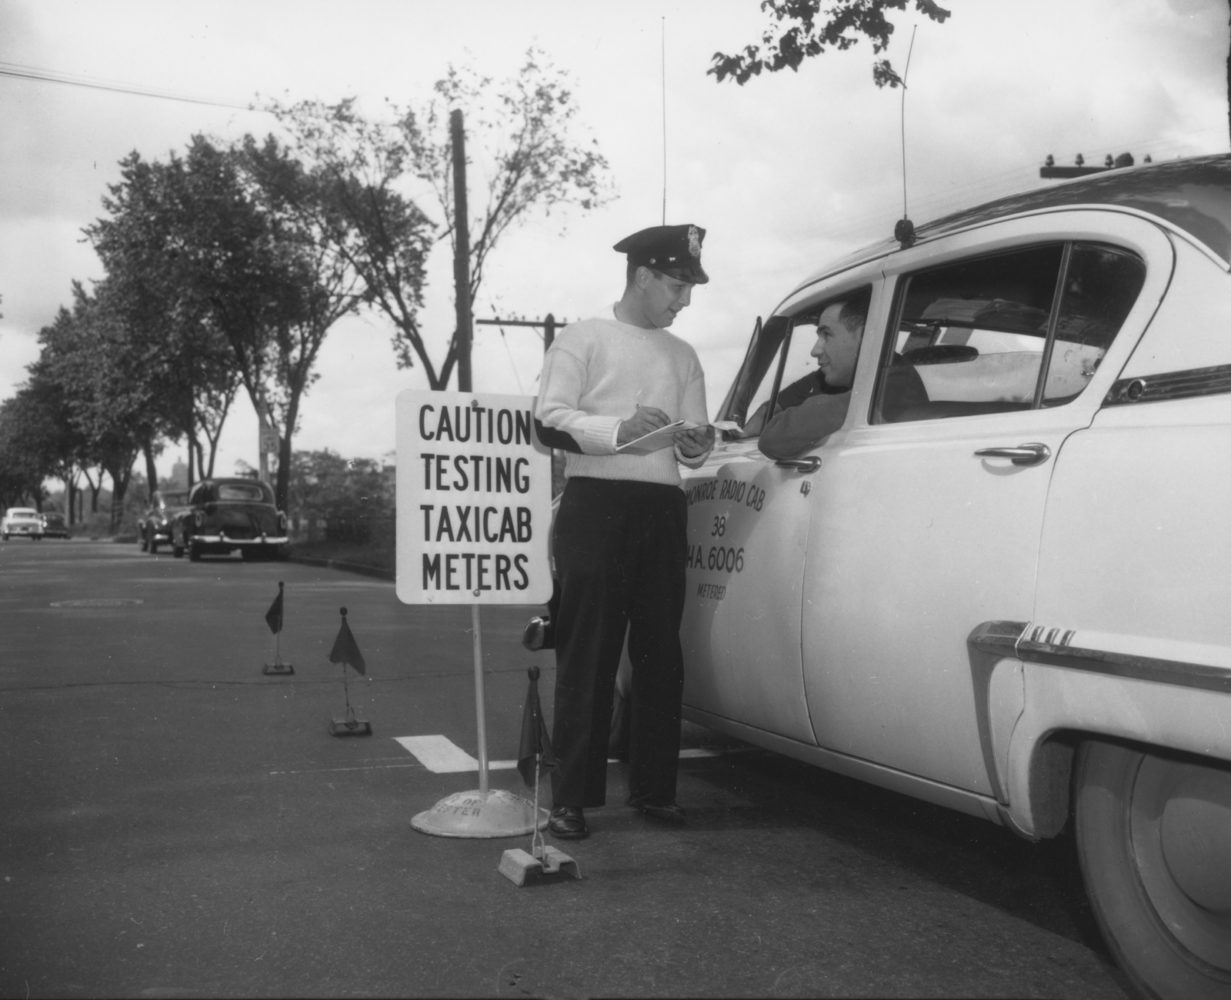 Taxi cab meter testing by Weights & Measures 1954- photo from City of Rochester